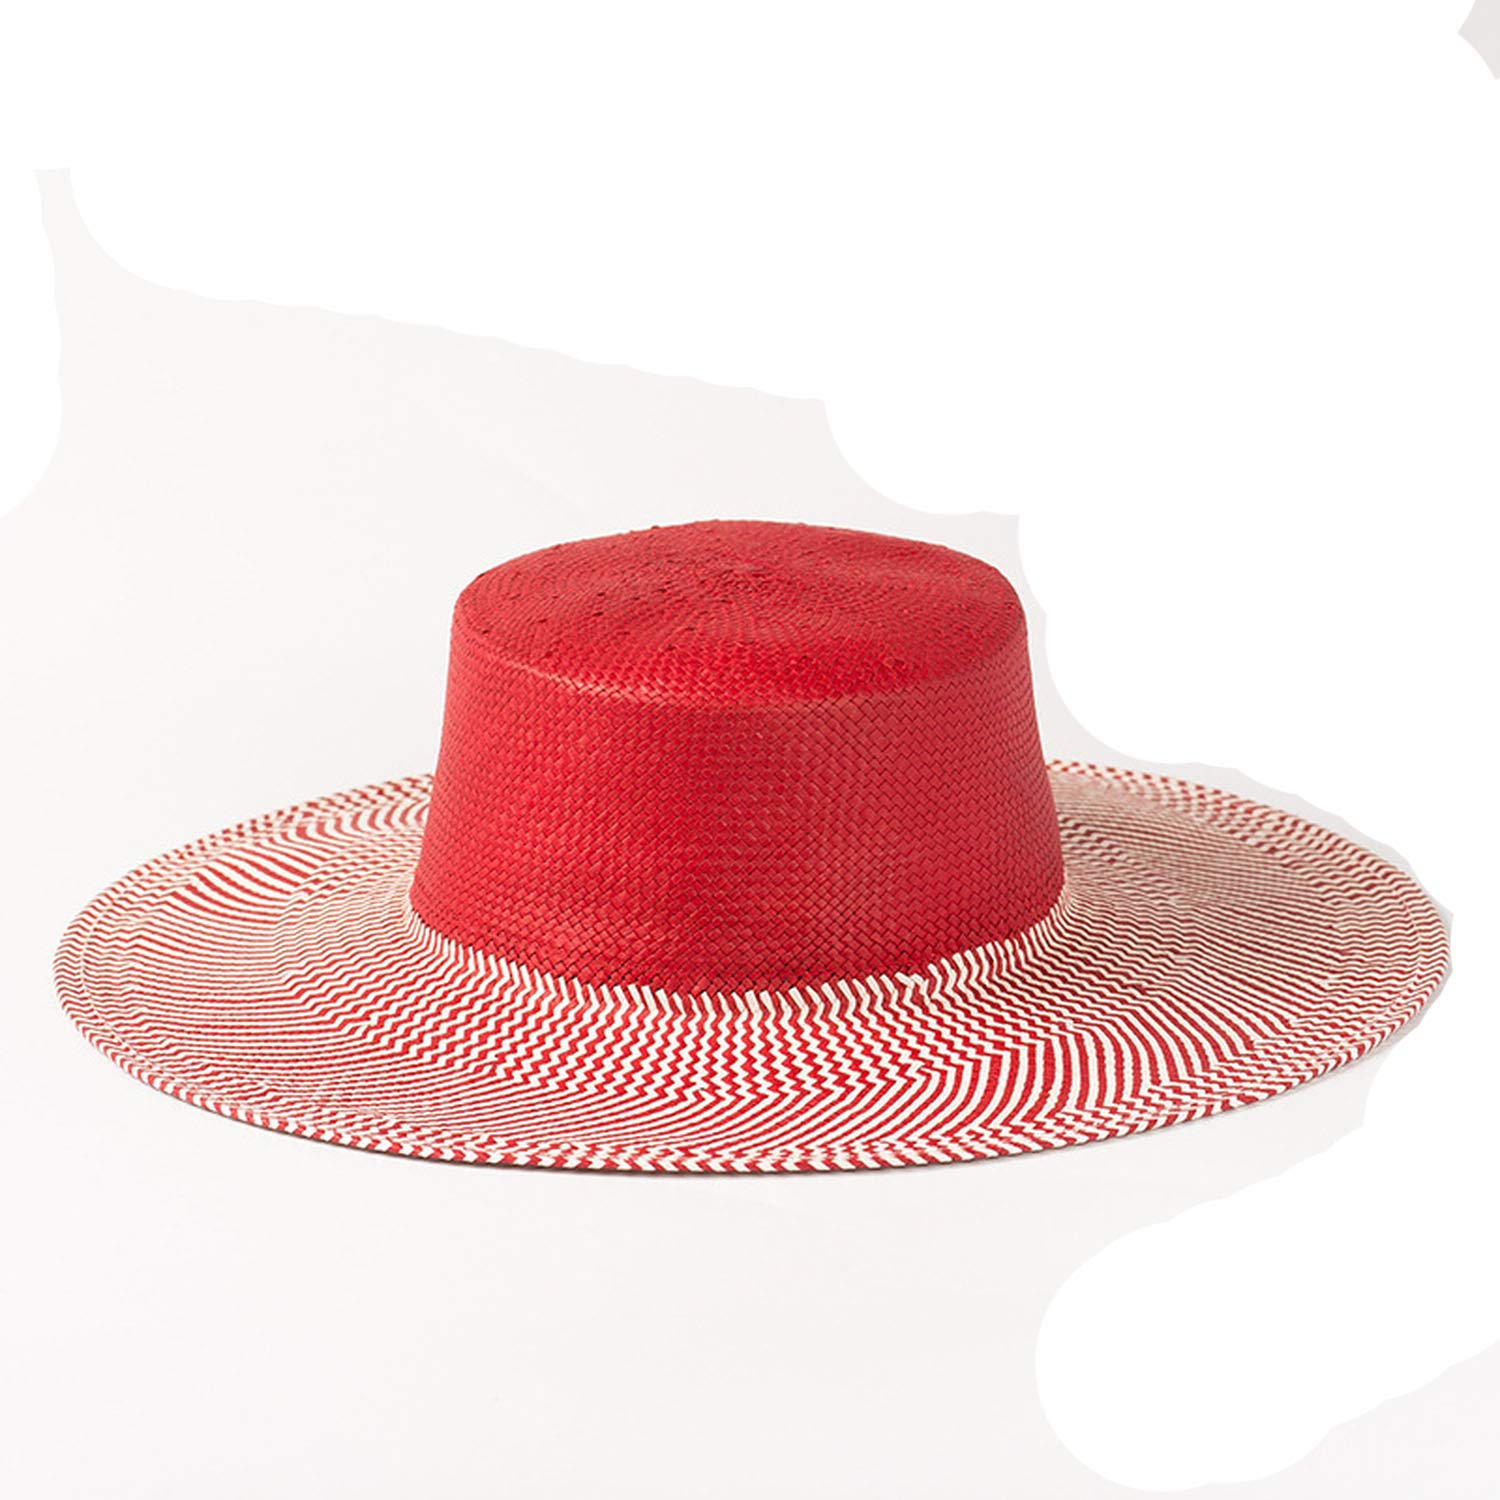 003 Red Without Trim CHENTAI Sun Hats for Women Summer Beach Hats Paper Straw Hat for Ladies Boater Hat